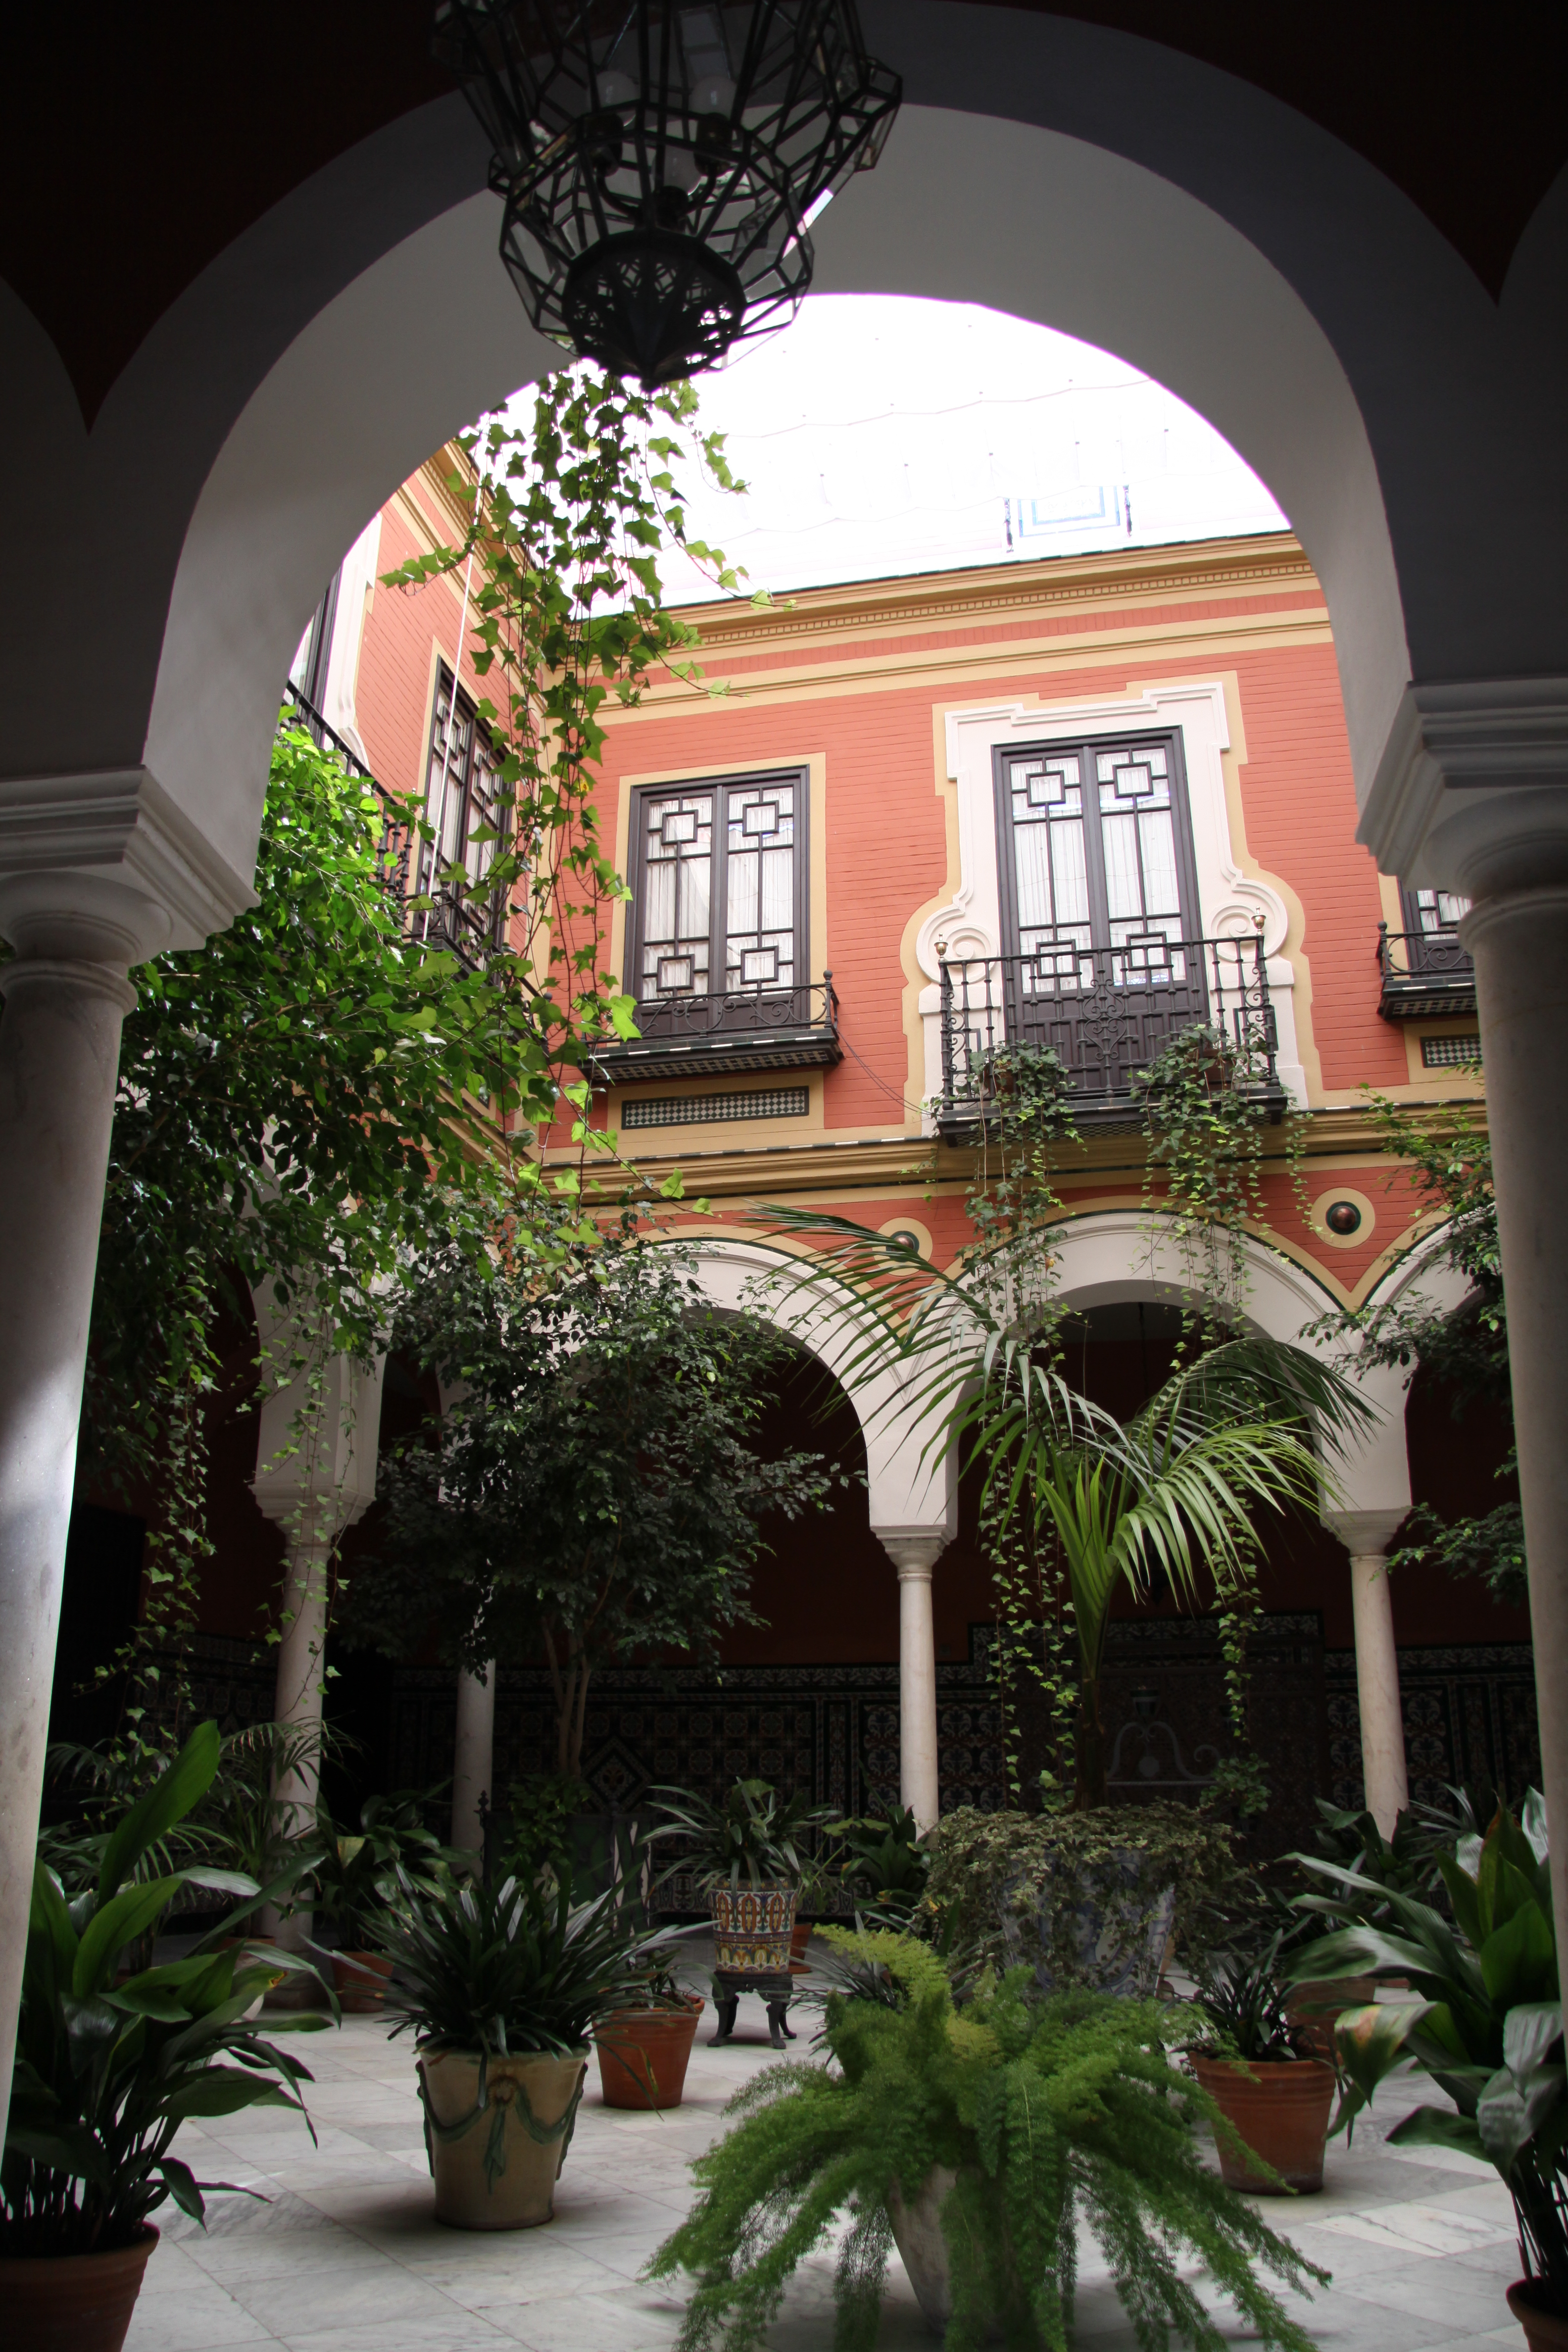 Typical Andalucian patio Seville www.andrewforbes.com